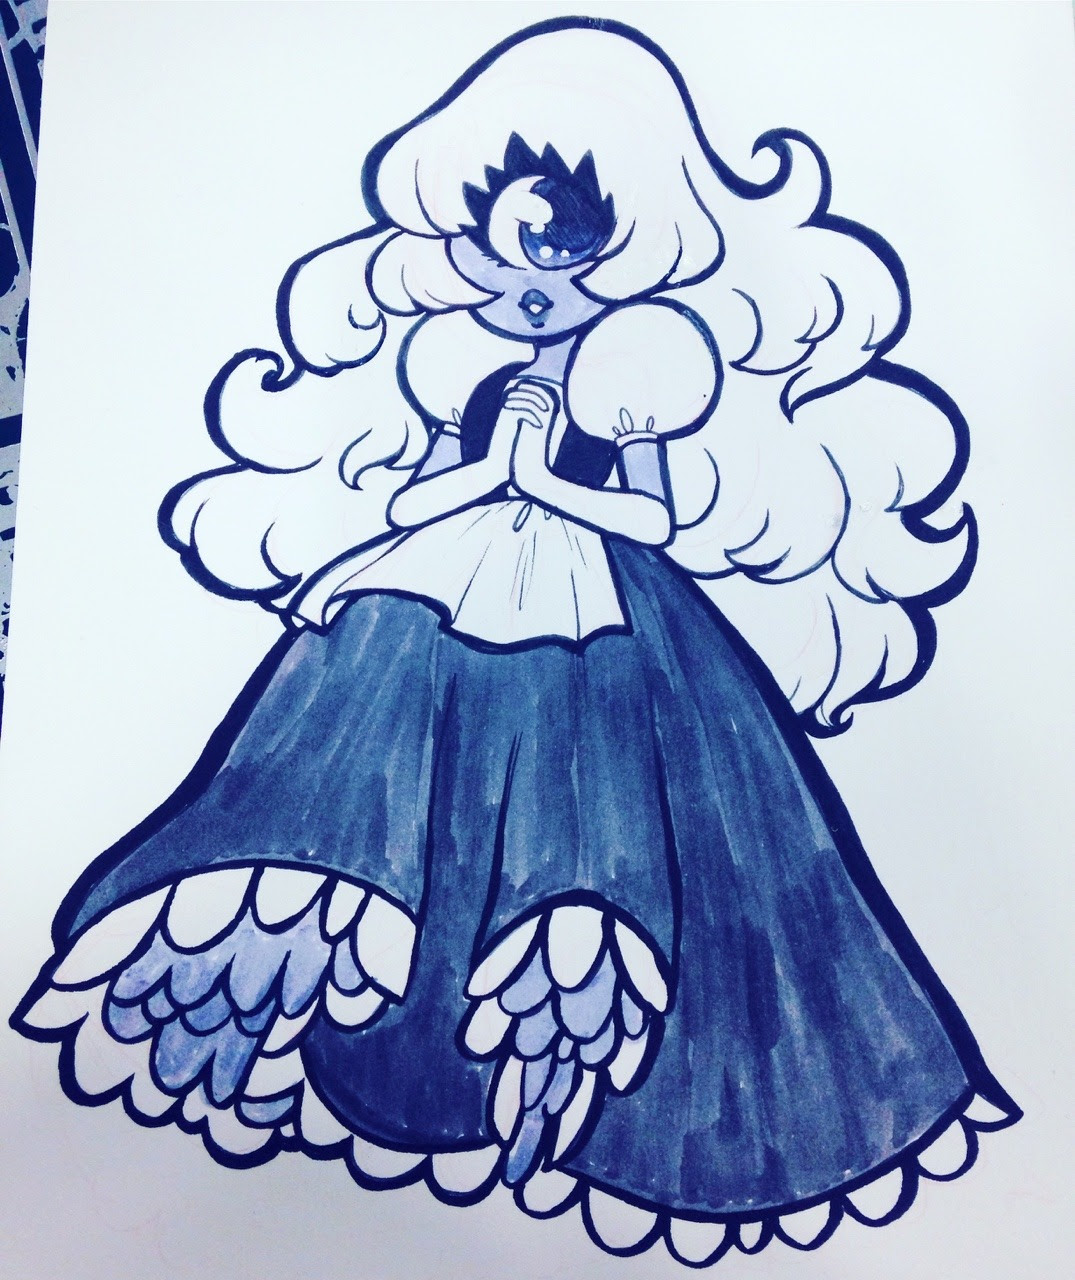 Sapphire commission at San Japan! I'm still here at table B102! 😘